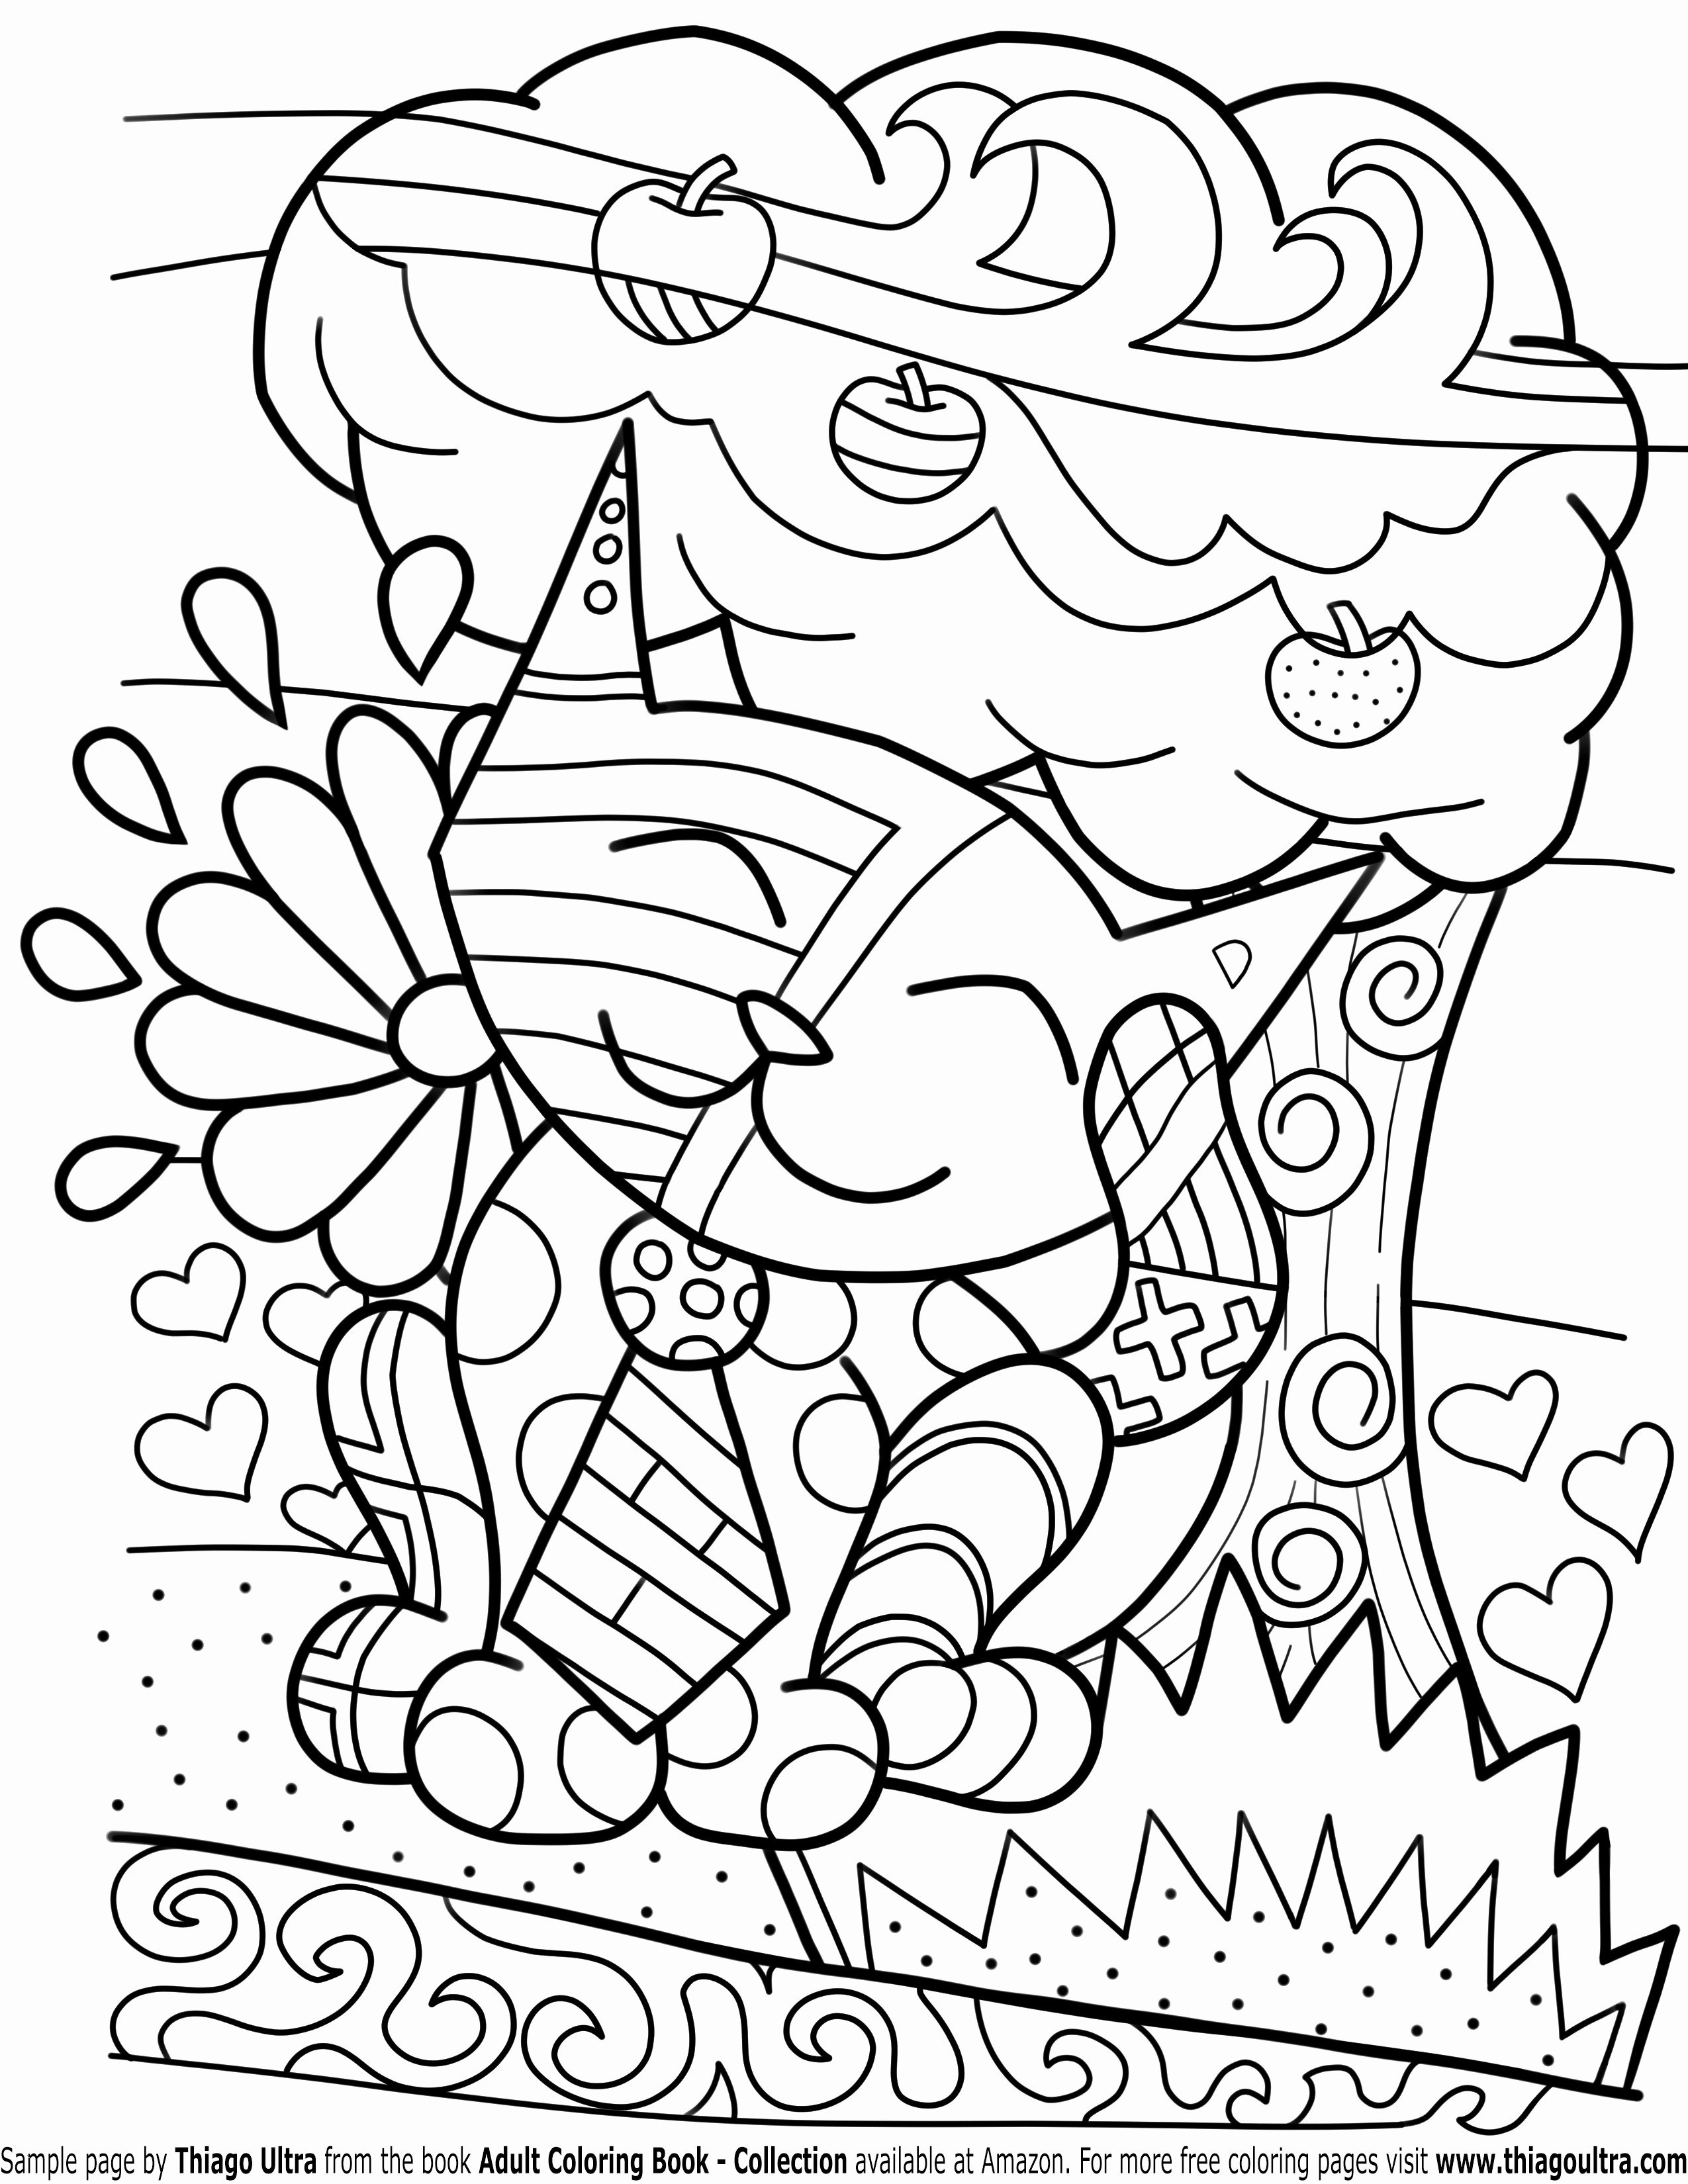 Mia and Me Coloring Pages Neu Ausmalbilder Jaguar Schön Jaguar Coloring Pages Lovely Jaguar Fotografieren